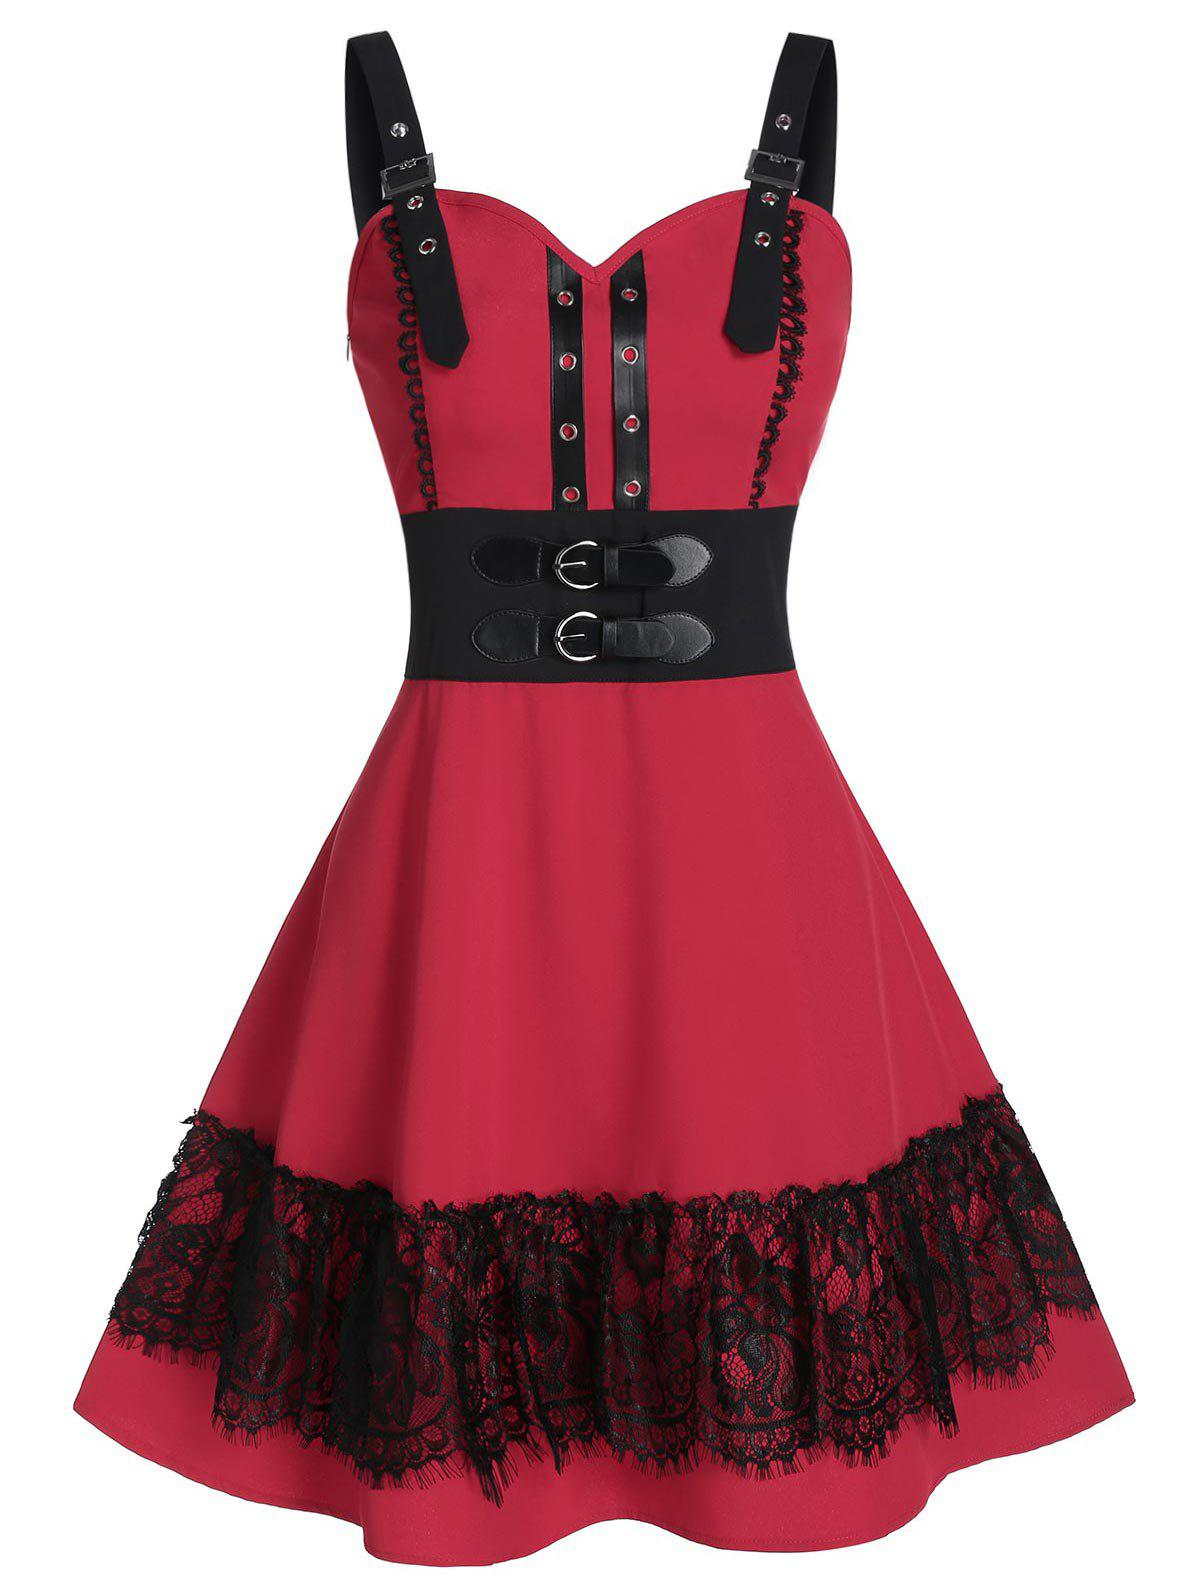 Fashion Buckle Grommets Fit and Flare Dress